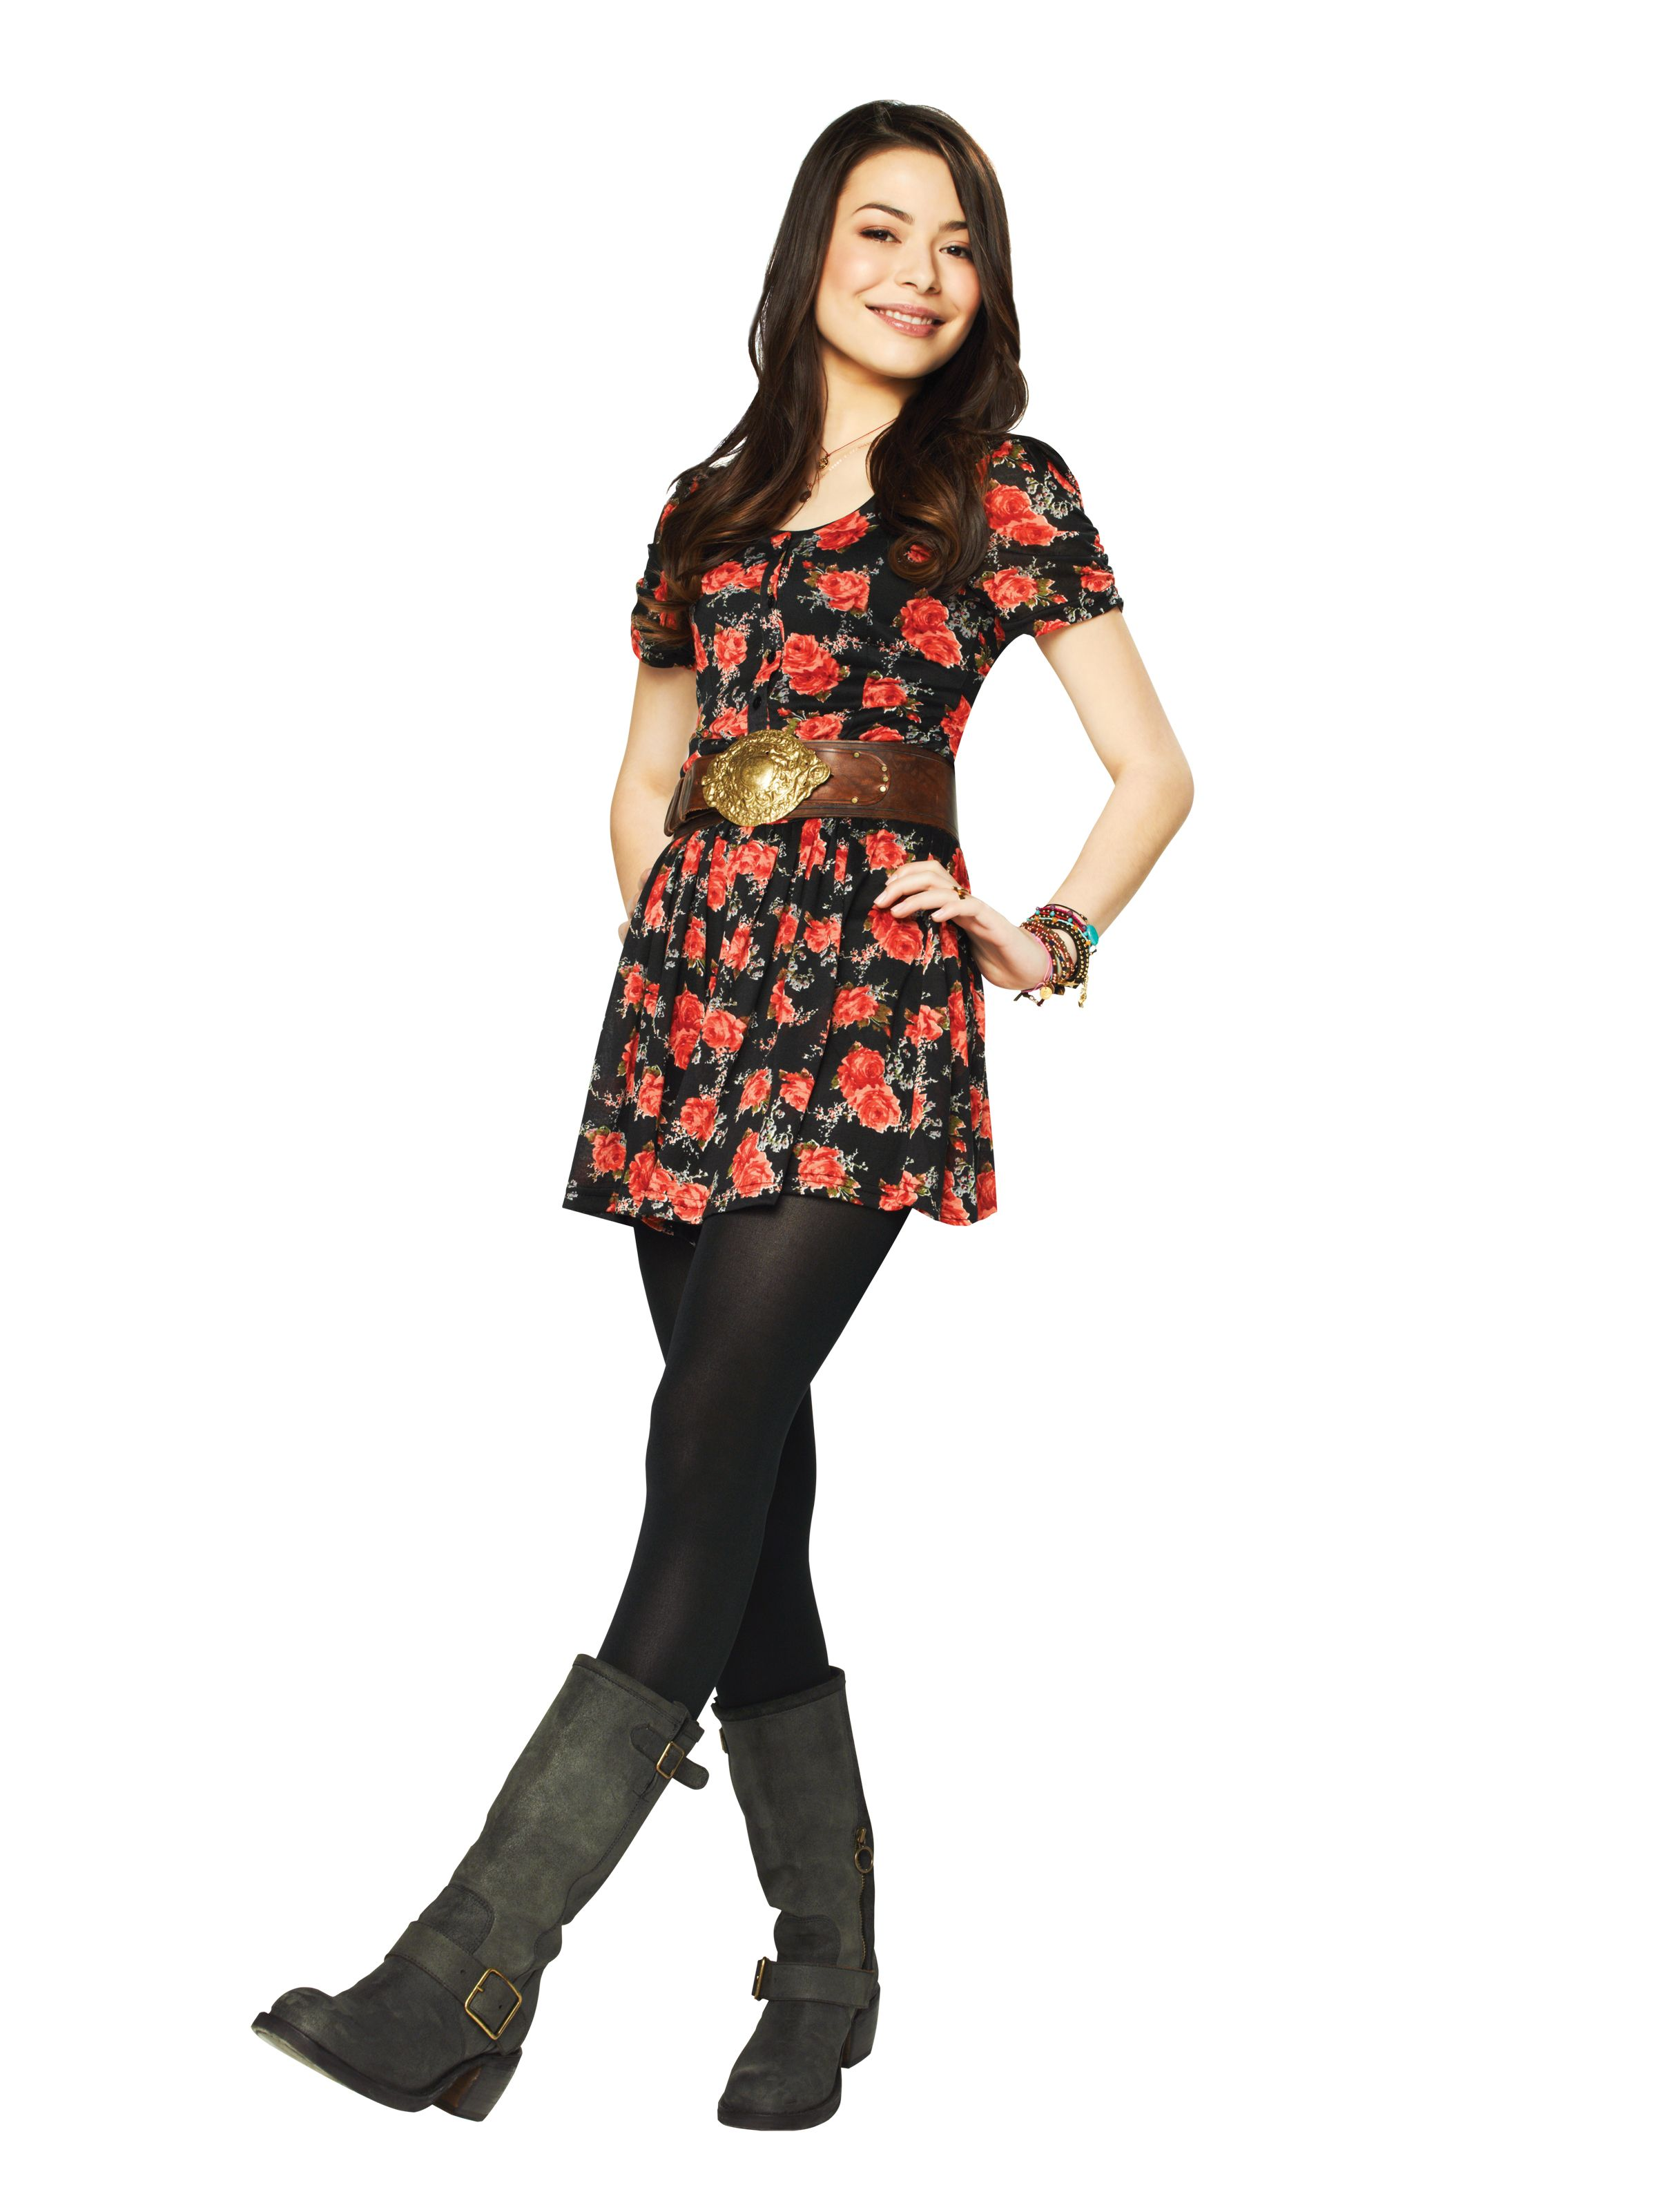 icarly photoshoot - Google Search | icarly | Pinterest | Miranda ...